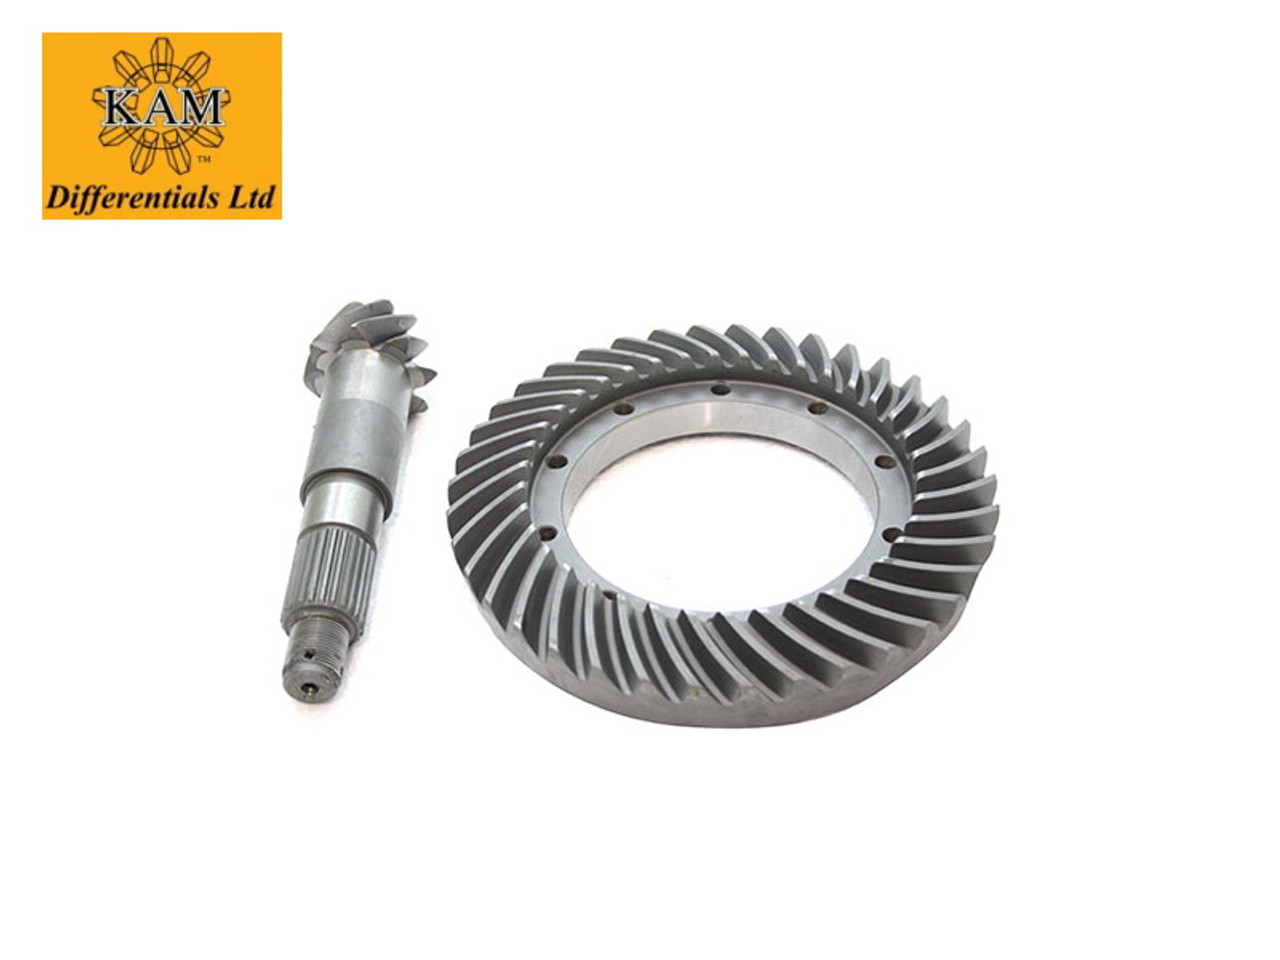 KAM 4.75 CROWN WHEEL&PINION FRONT(LONG NOSE ROVER DIFF)